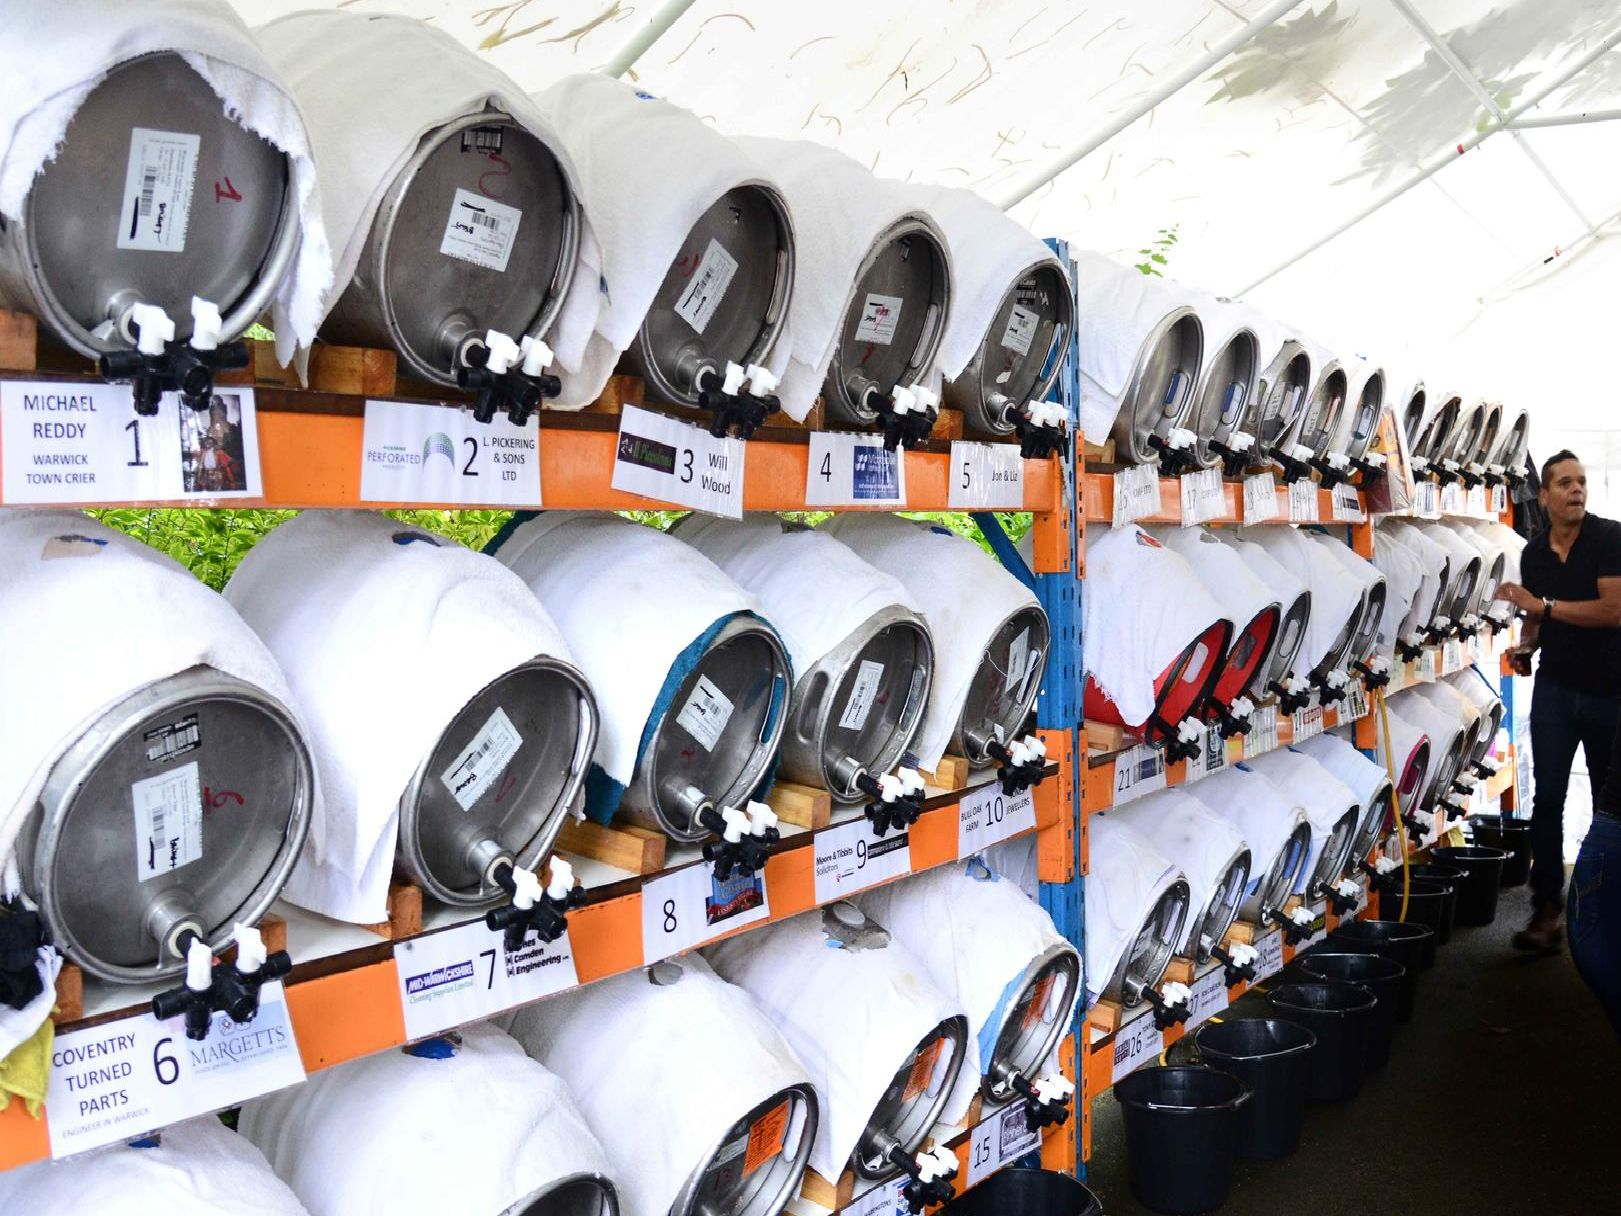 A row of beers at the festival. Photo by Gill Fletcher